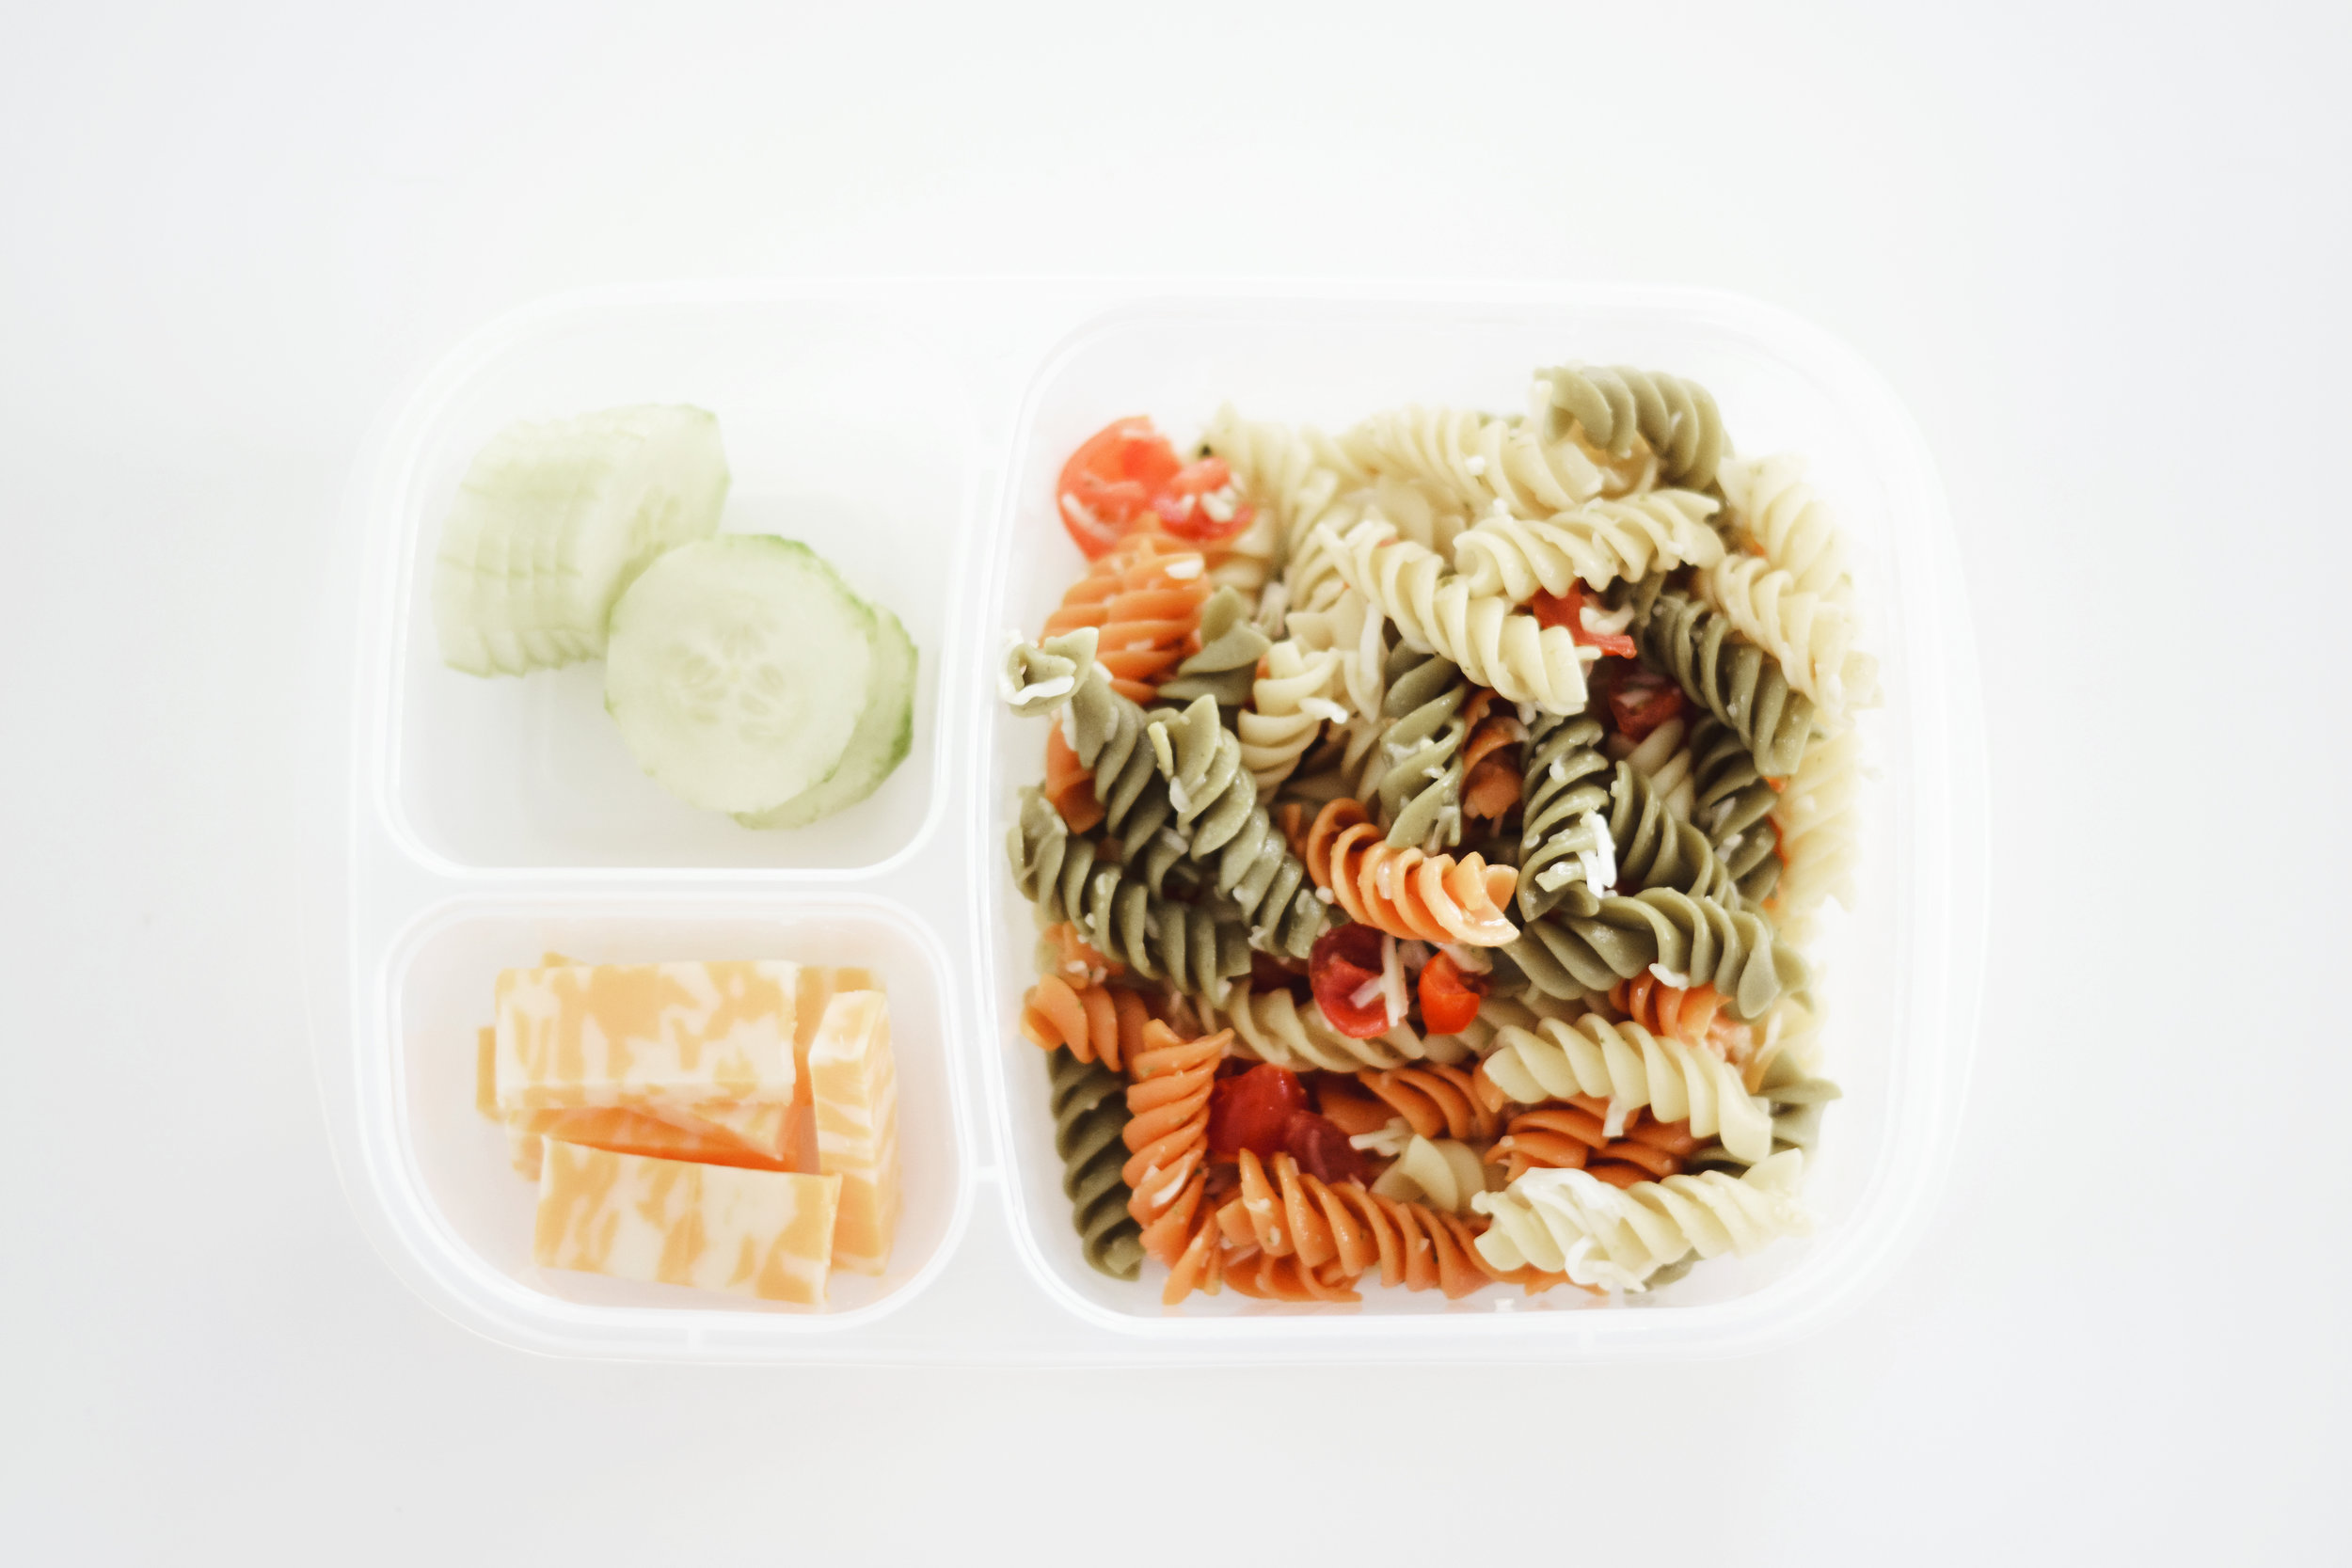 lunches2.jpg